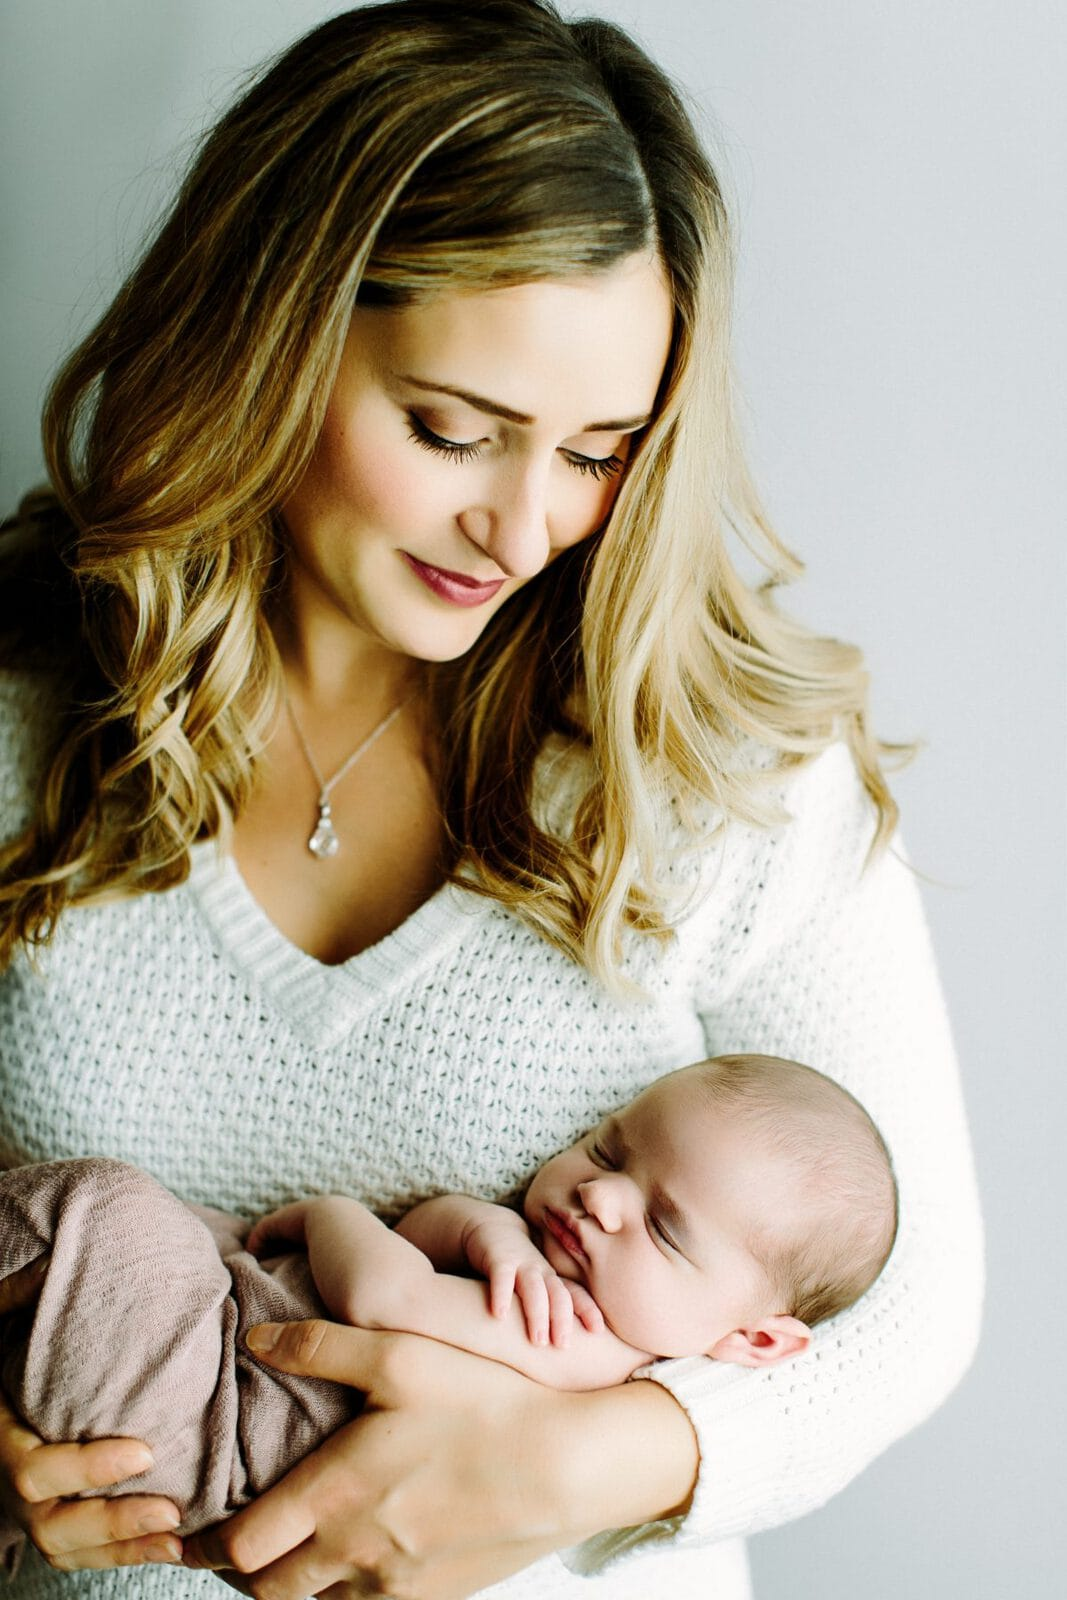 mother holding newborn baby girl in arms